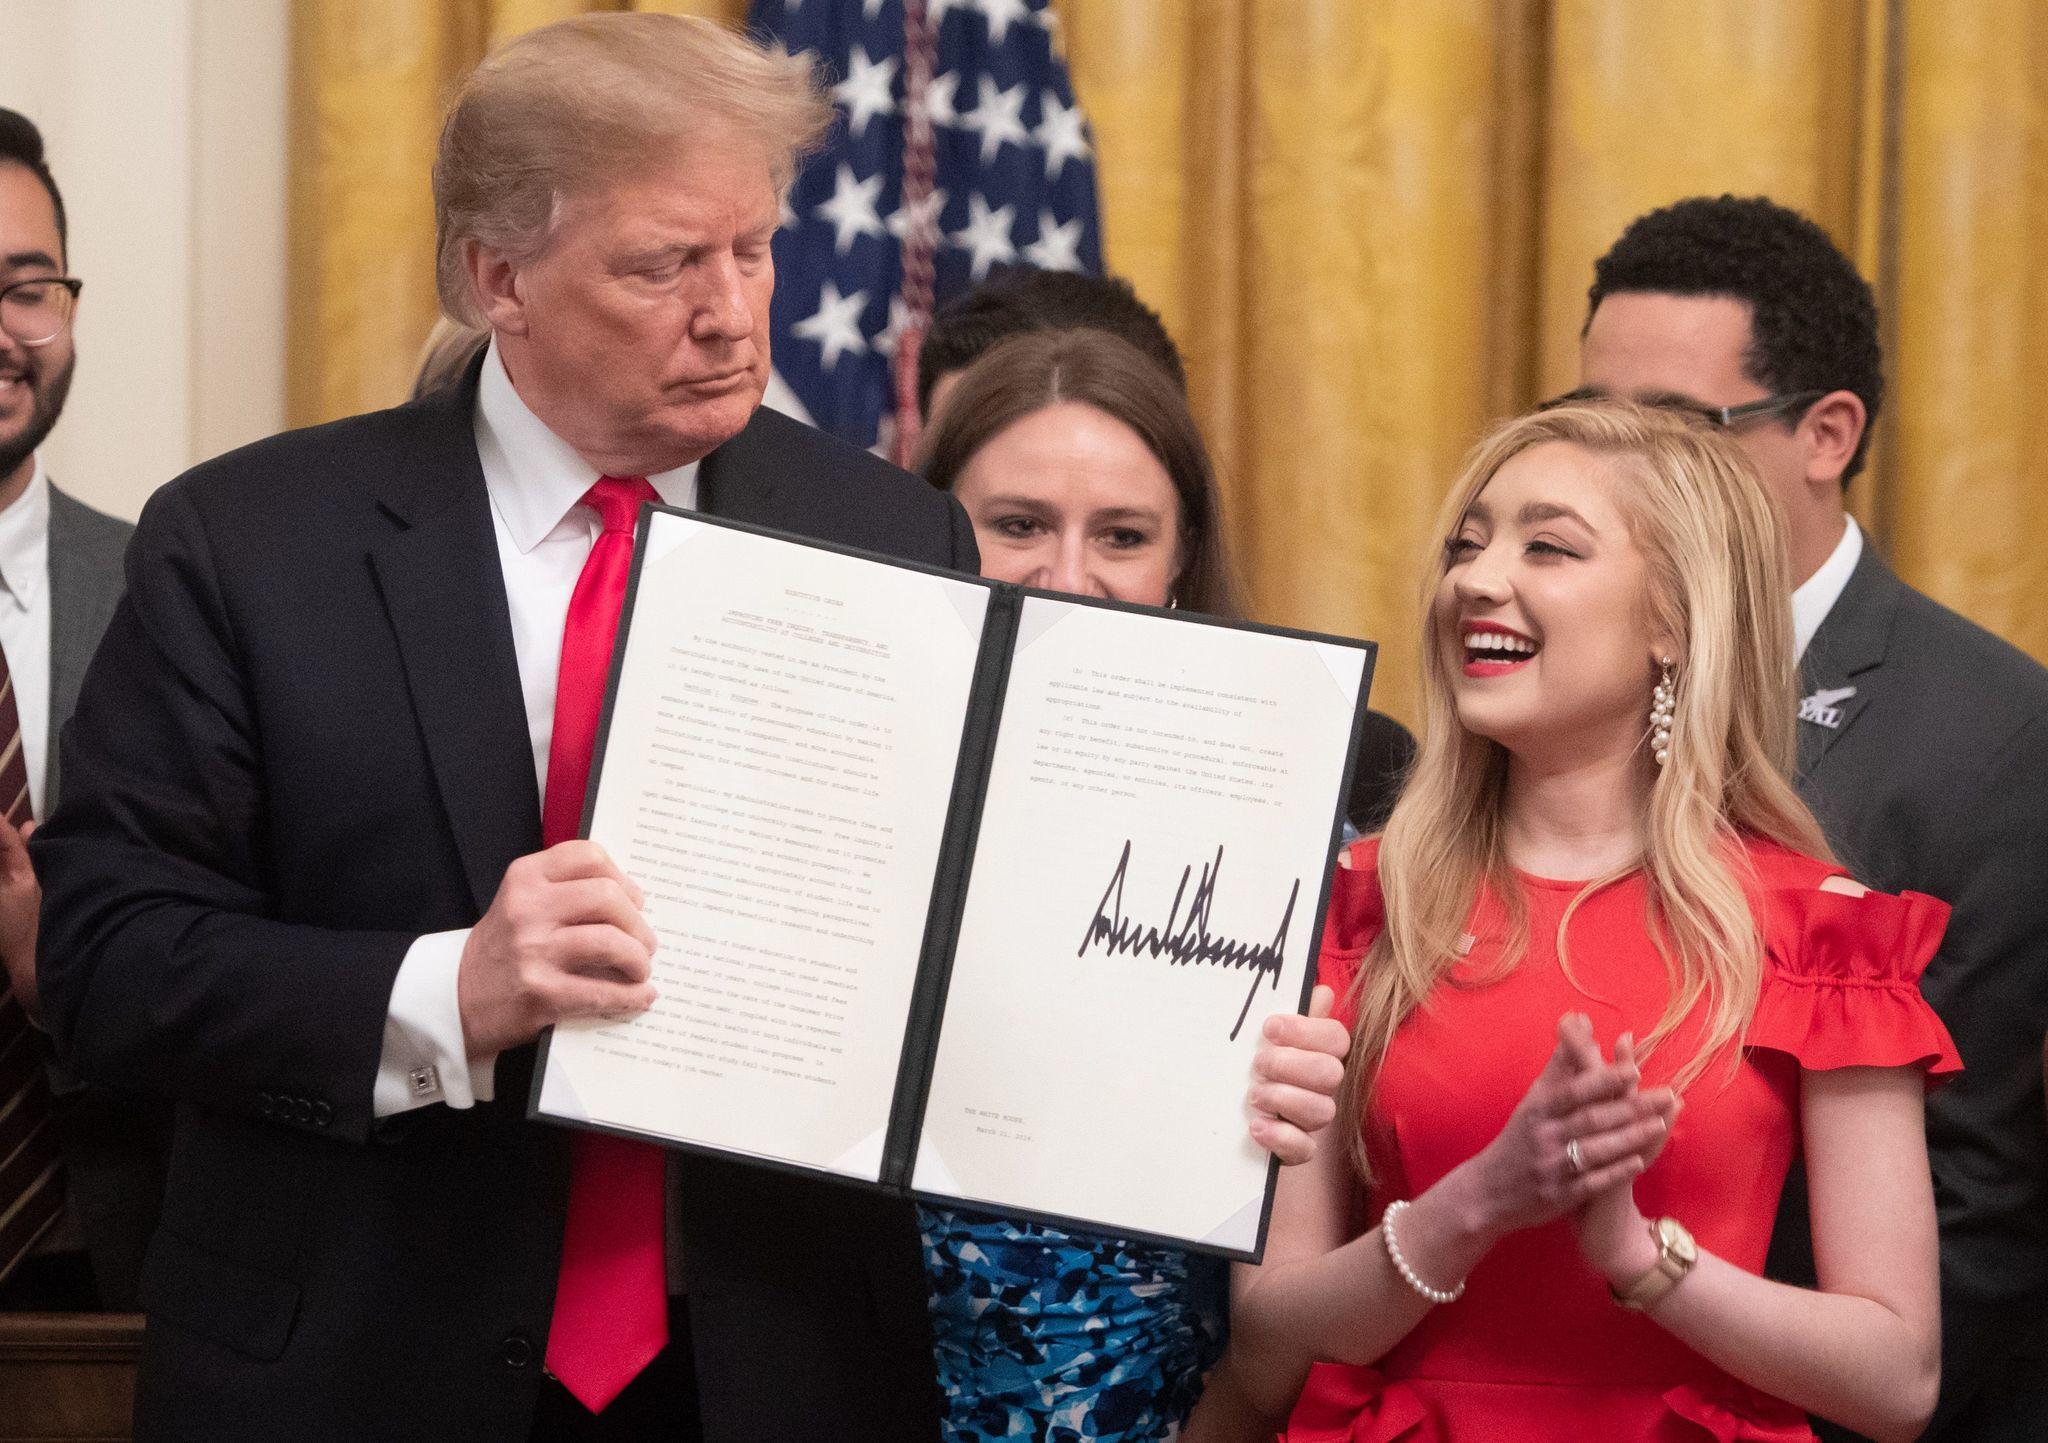 Trump signs executive order on free speech on college campuses